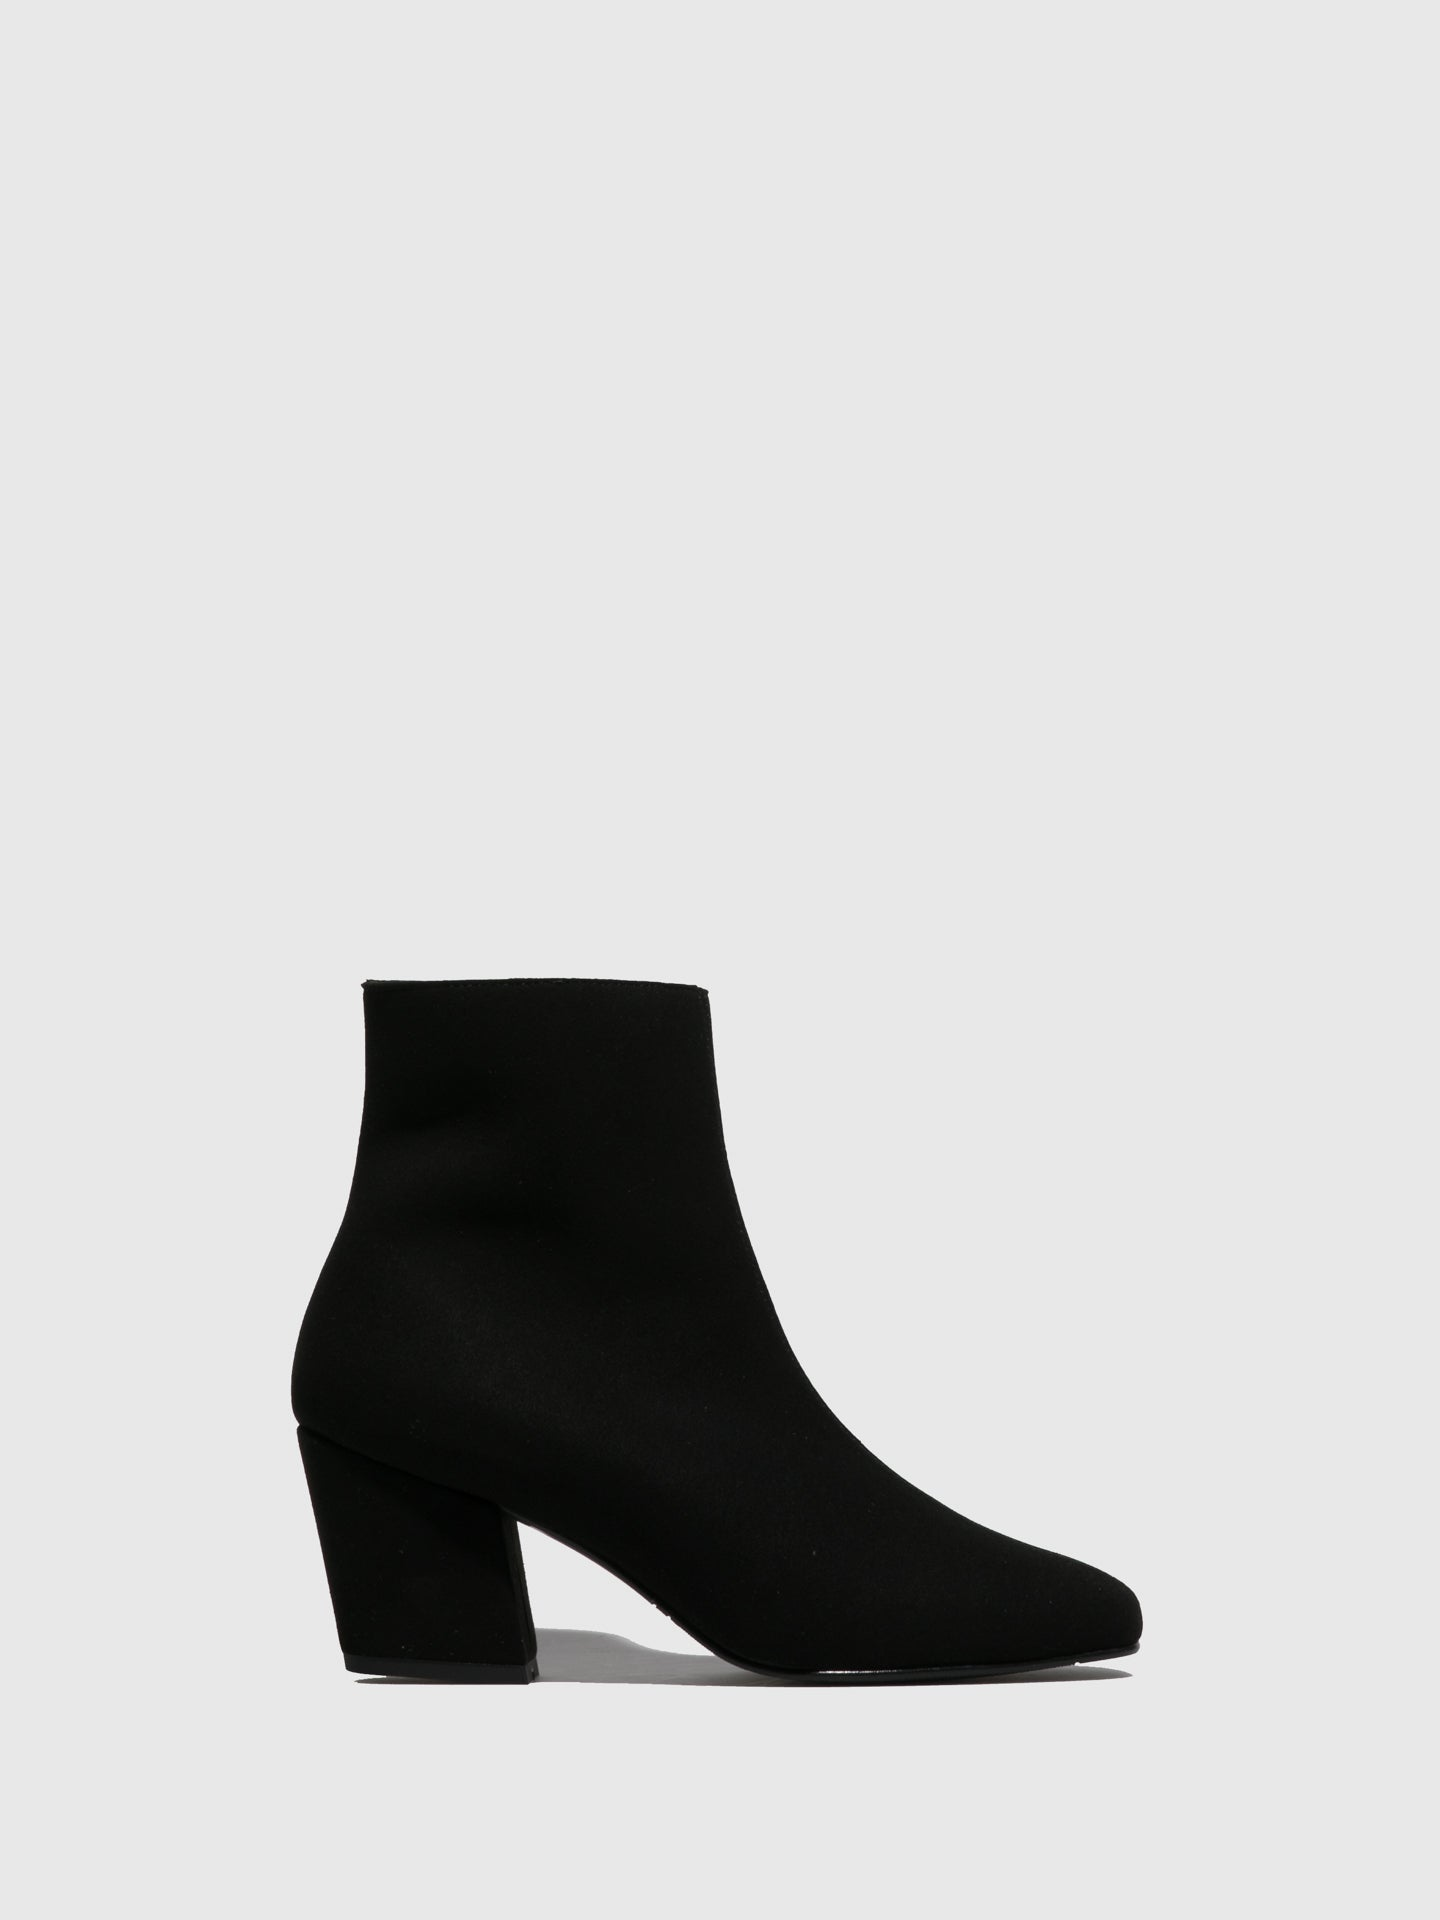 NAE Vegan Shoes Black Square Toe Boots